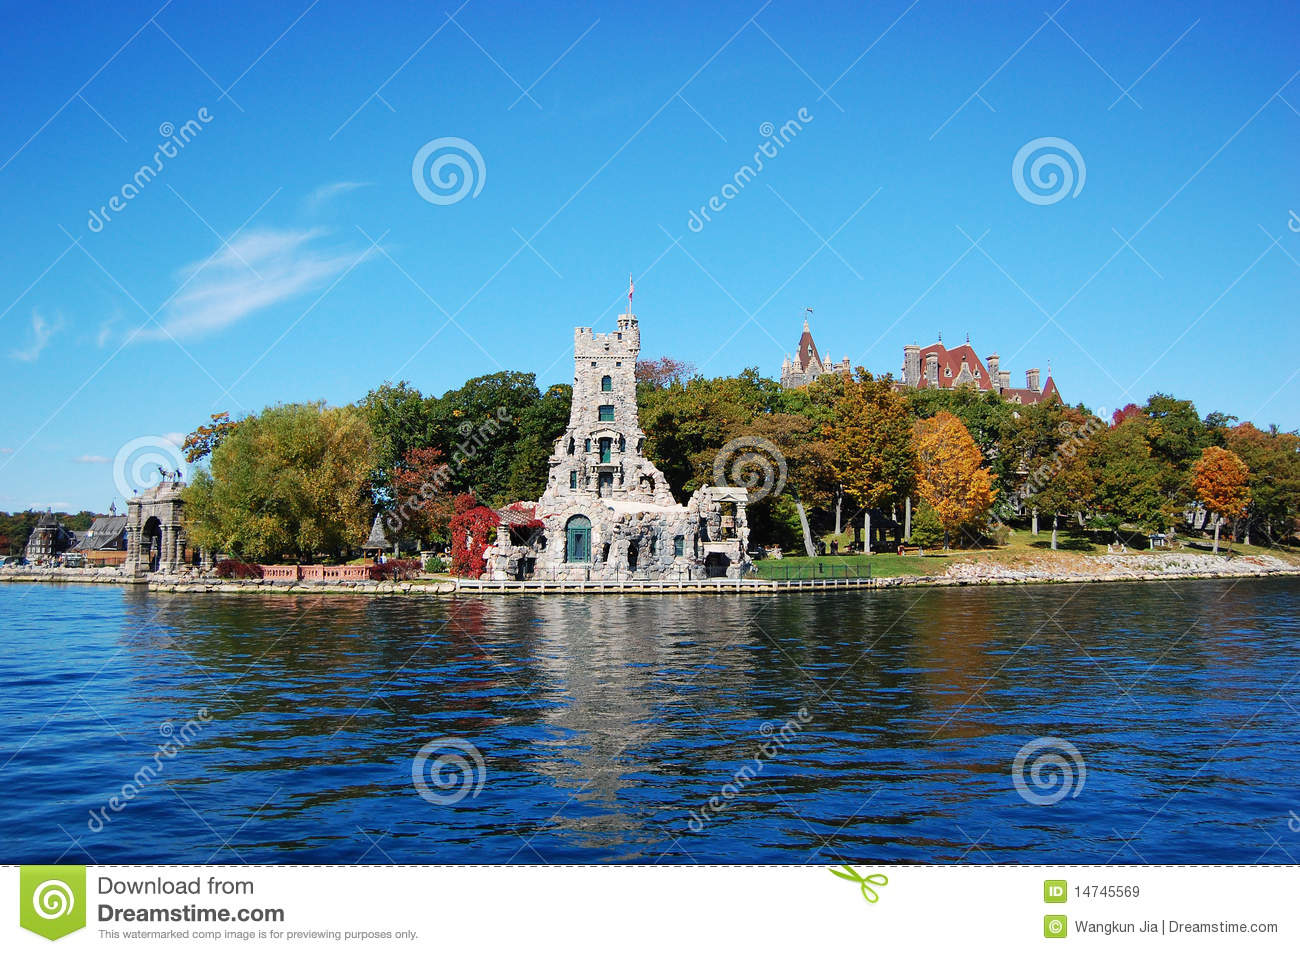 Boldt castle and alster tower on heart island thousand islands region